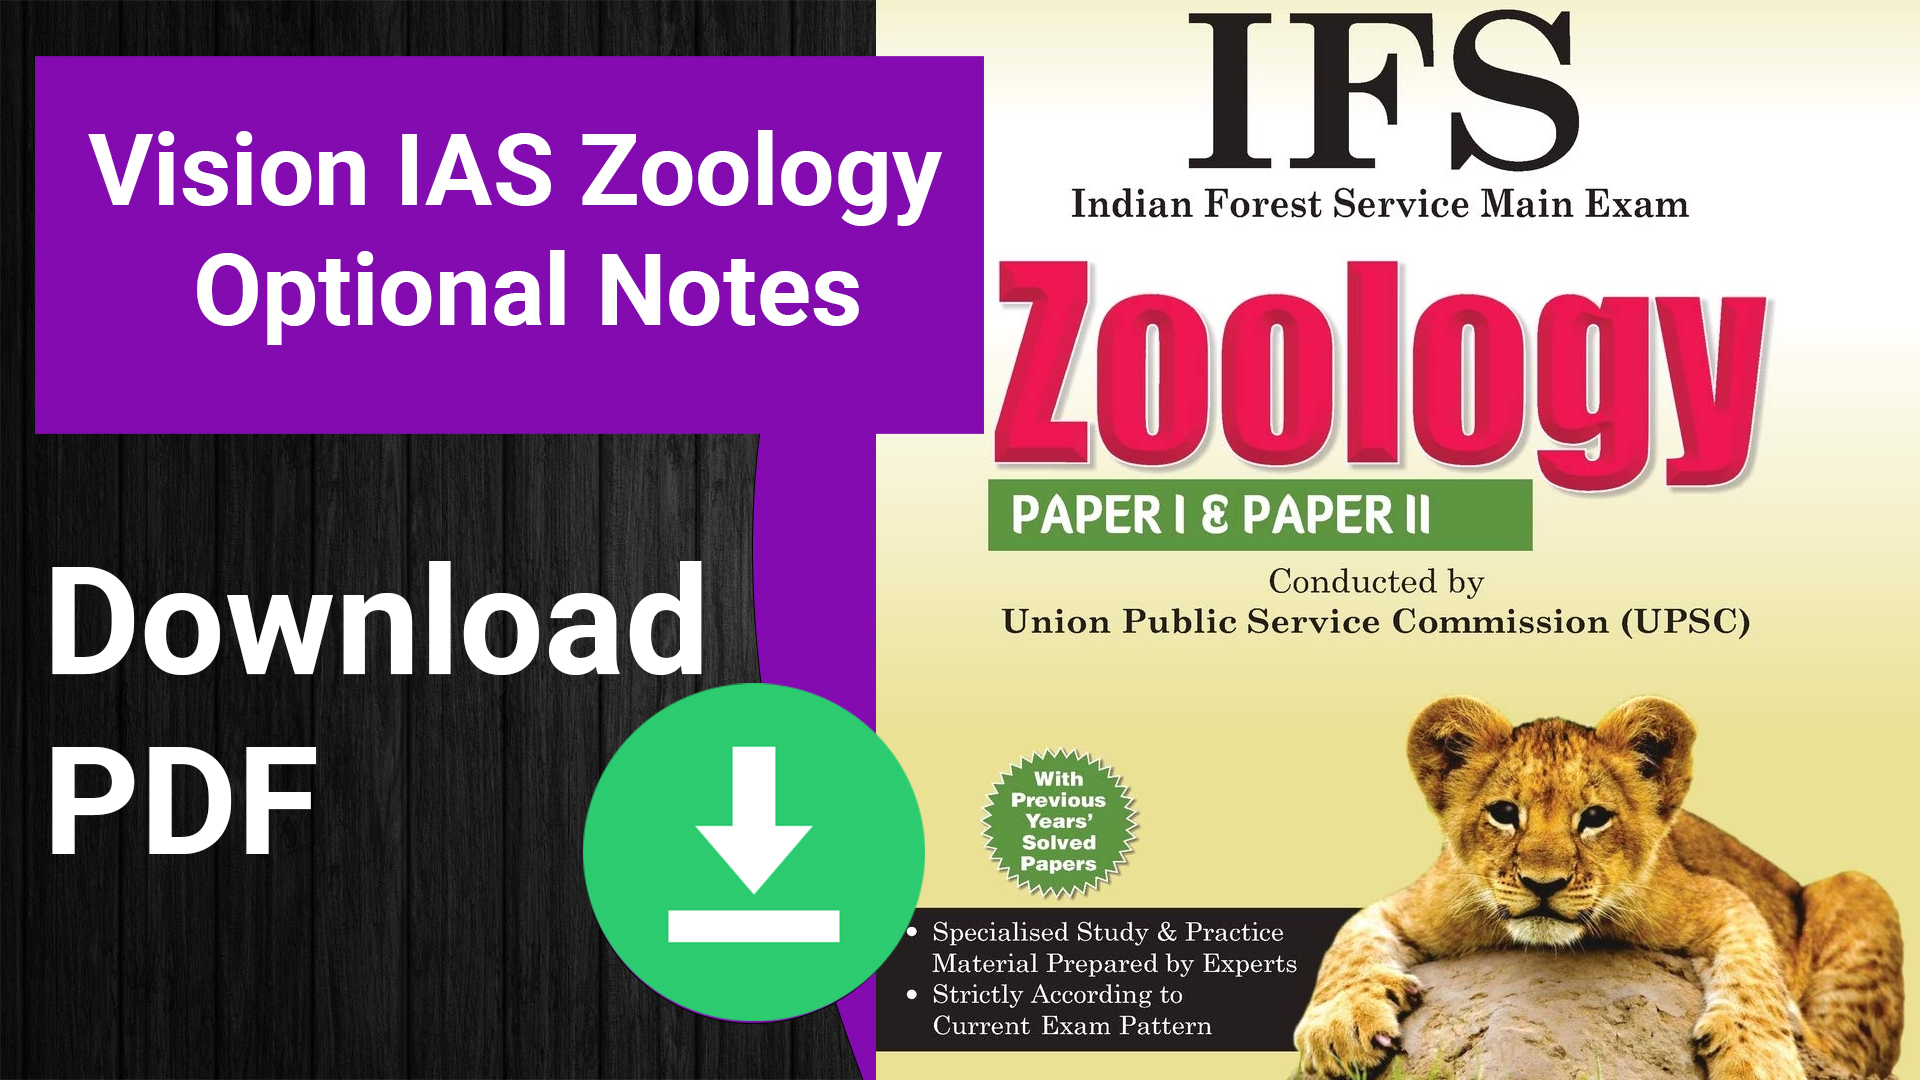 Vision IAS Zoology Optional Notes pdf download